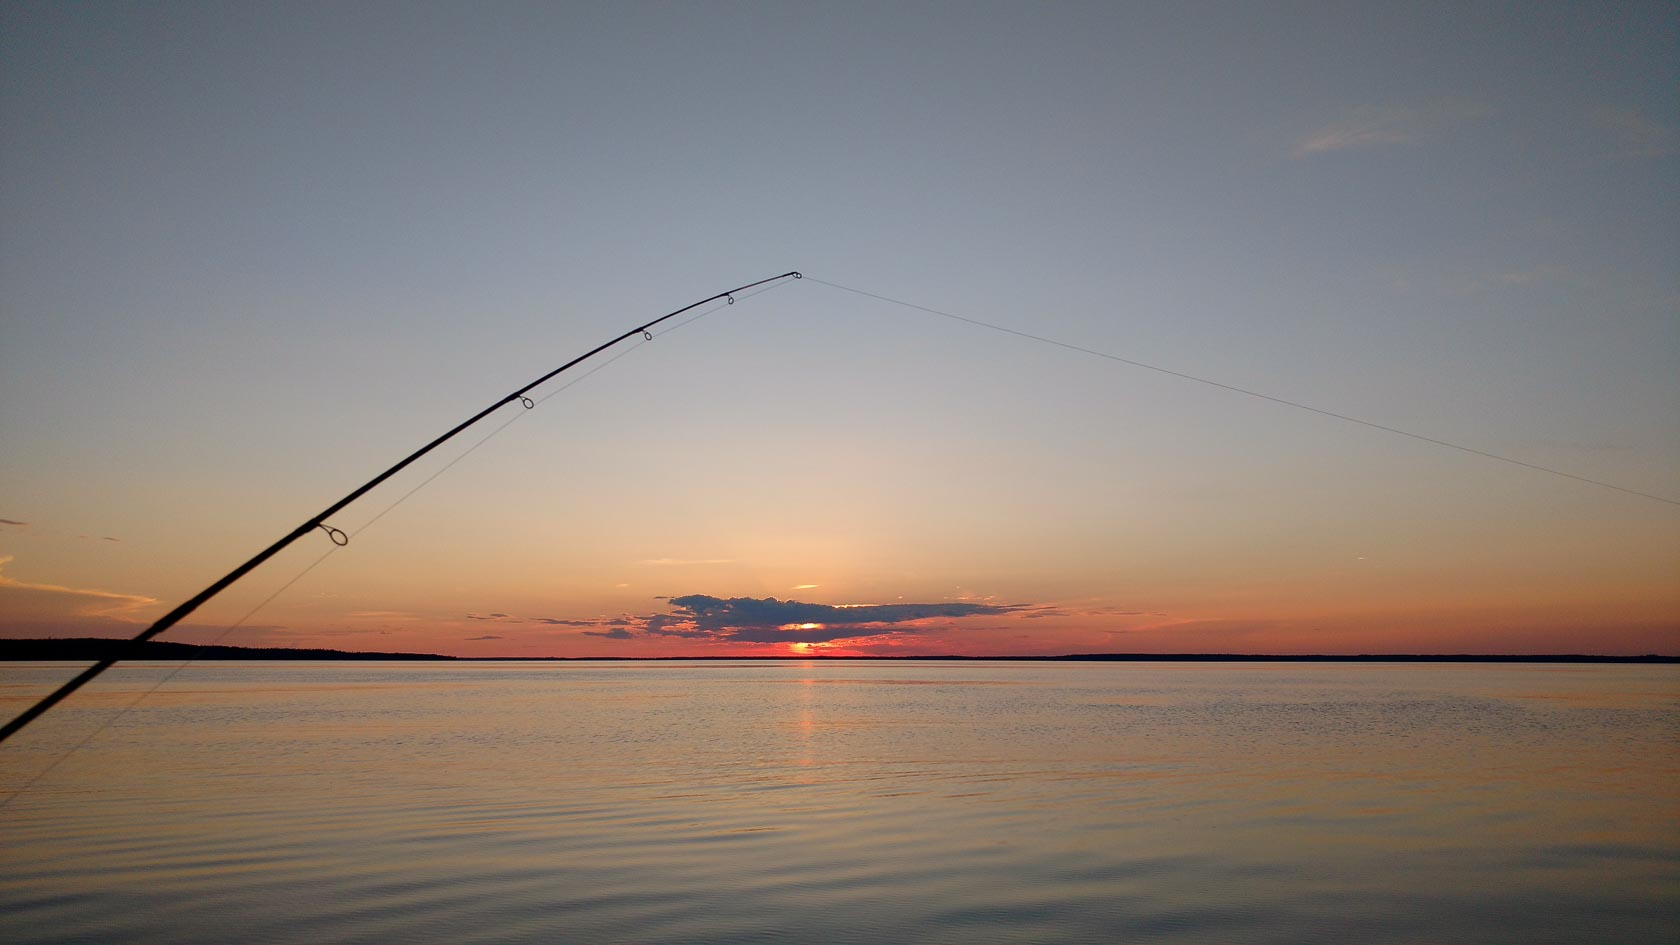 The sun sets over Smoothstone Lake in Saskatchewan Canada with a fishing pole in the foreground.